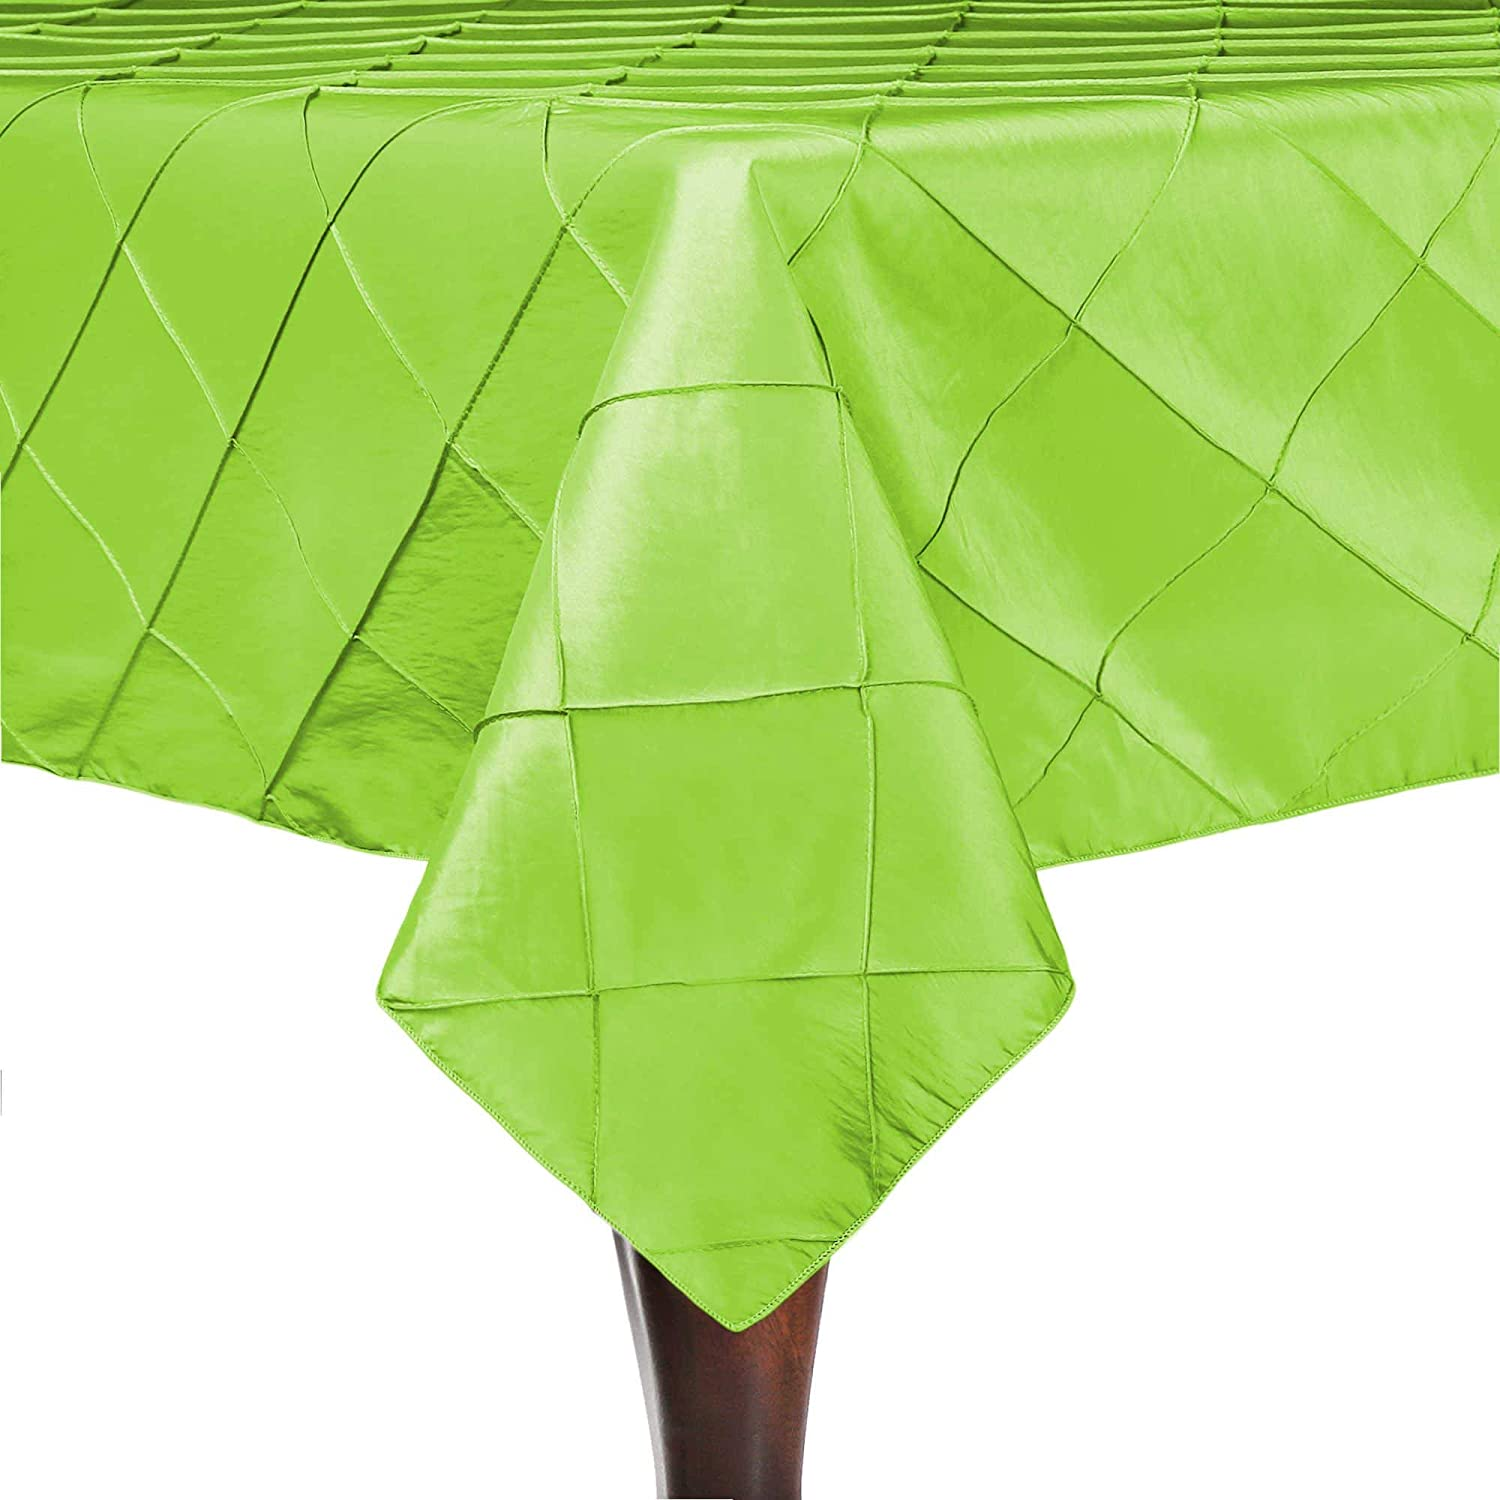 Ultimate Textile -10 Pack- Embroidered Pintuck Taffeta 60 x 90-Inch Rectangular Tablecloth Apple Lime Green